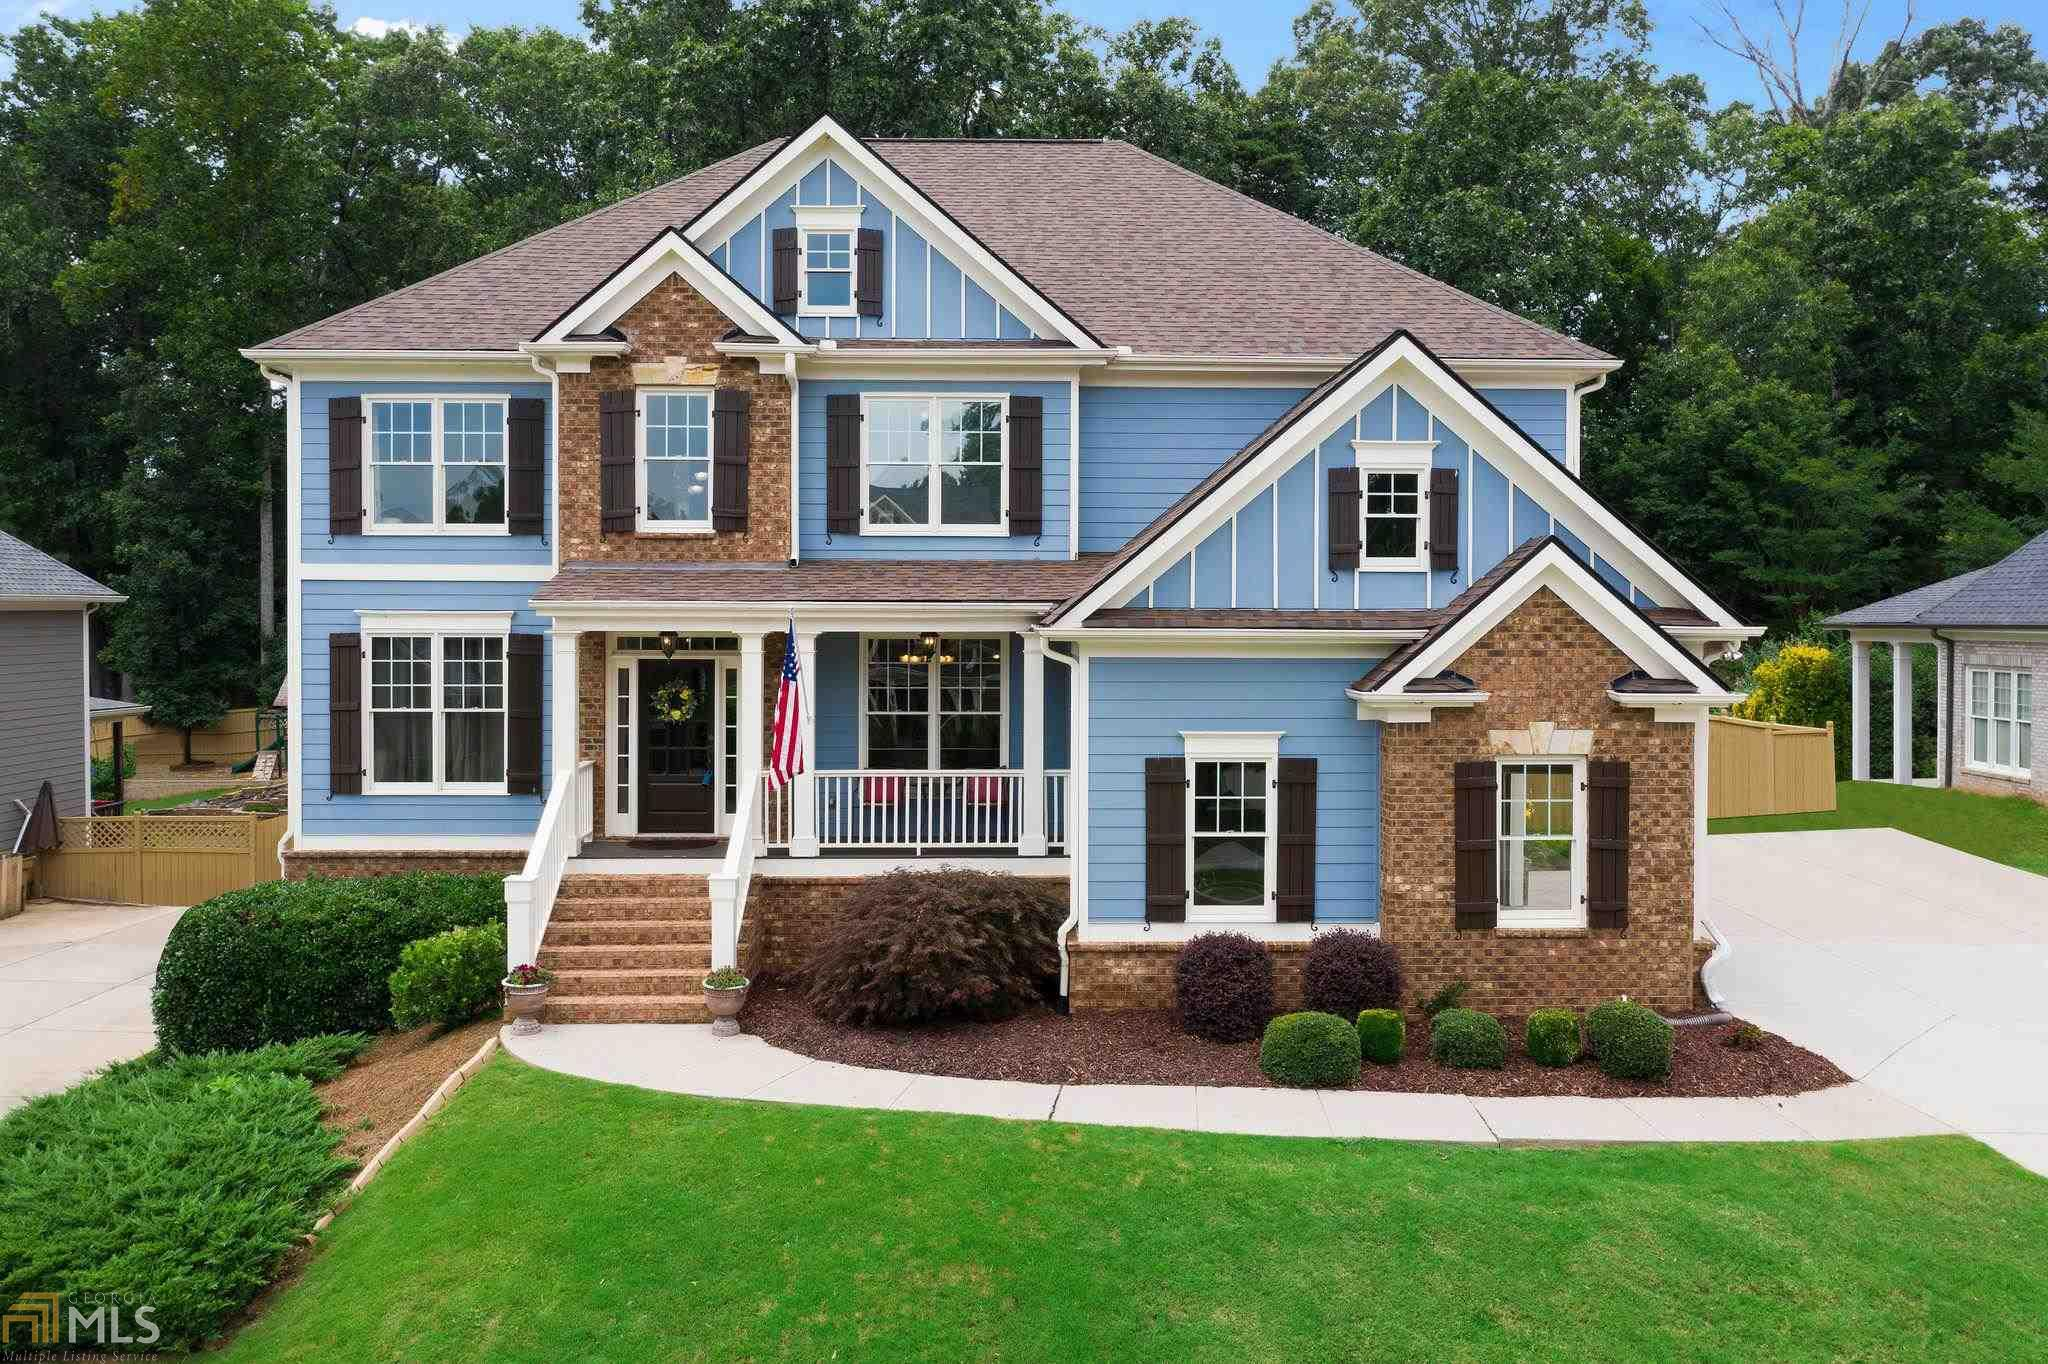 Image for property 742 Crescent Cir, Holly Springs, GA 30115-4771